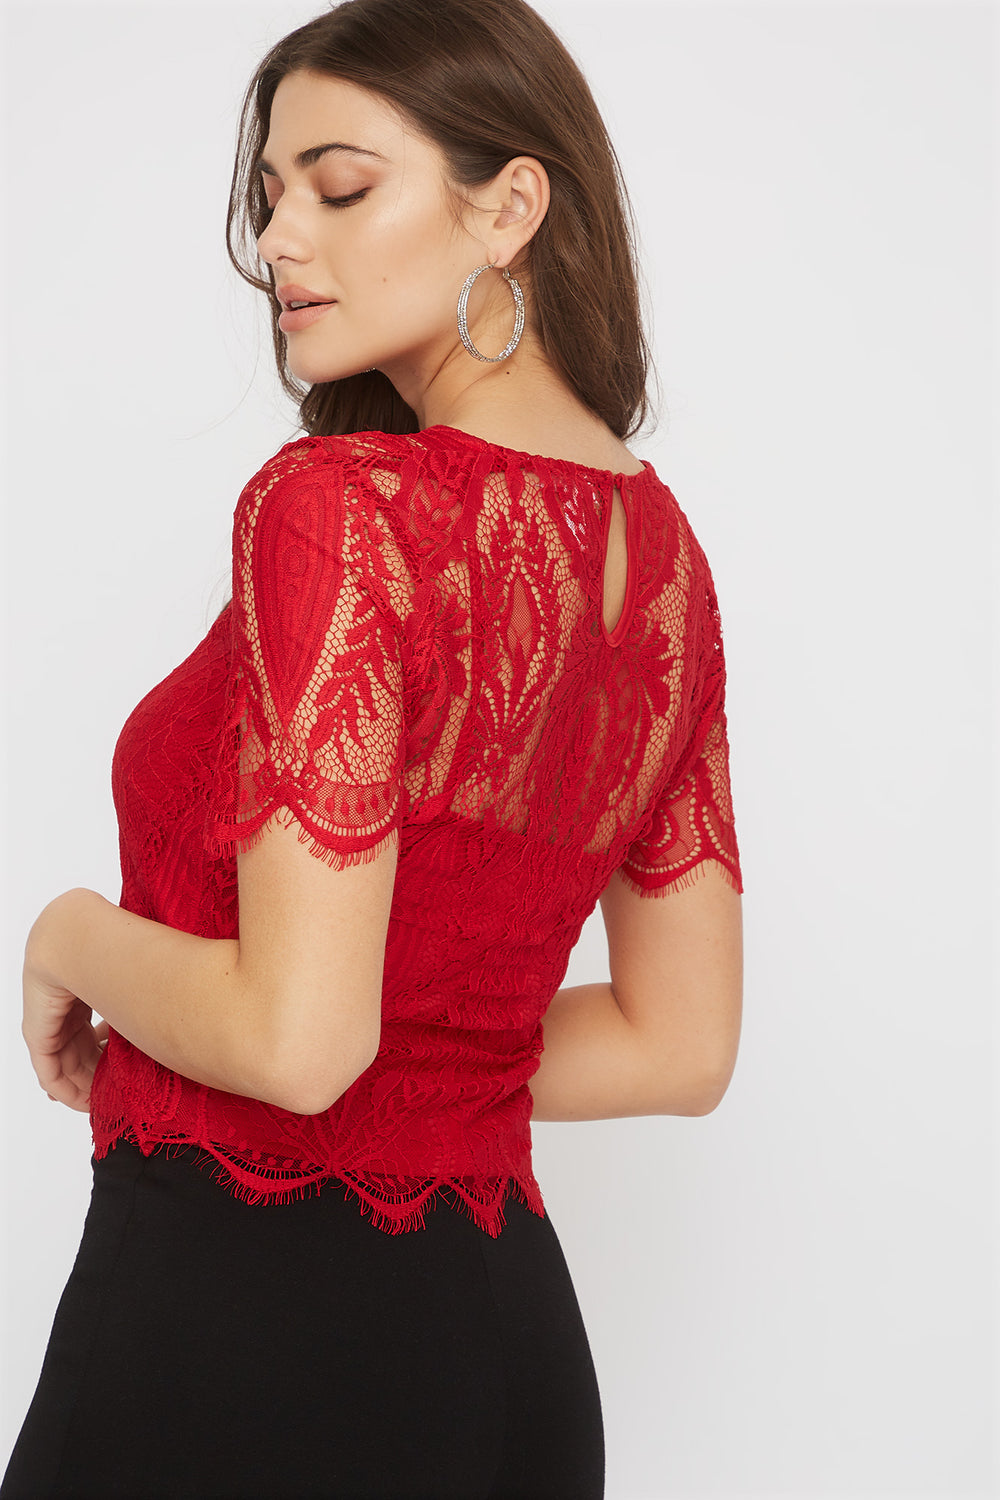 Lace Scallop Blouse Red